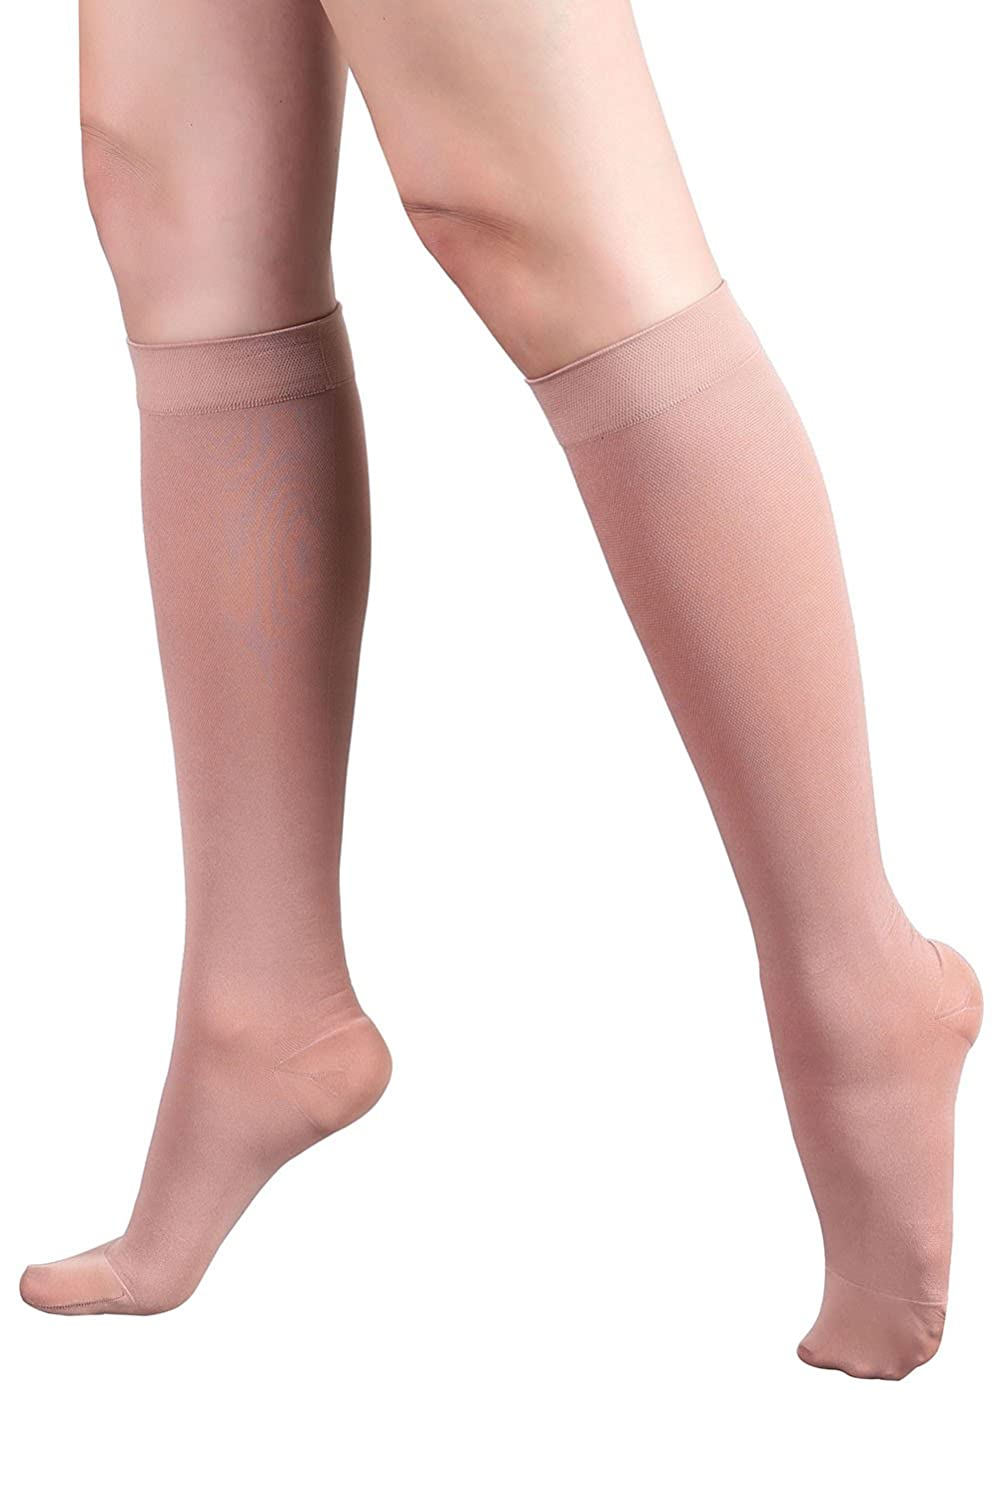 d588d9dfd33 Amazon.com  +MD Graduated Compression Socks 30-40 mmHg Extra Firm Pressure  Knee High Medical Support Stockings NudeM L  Health   Personal Care